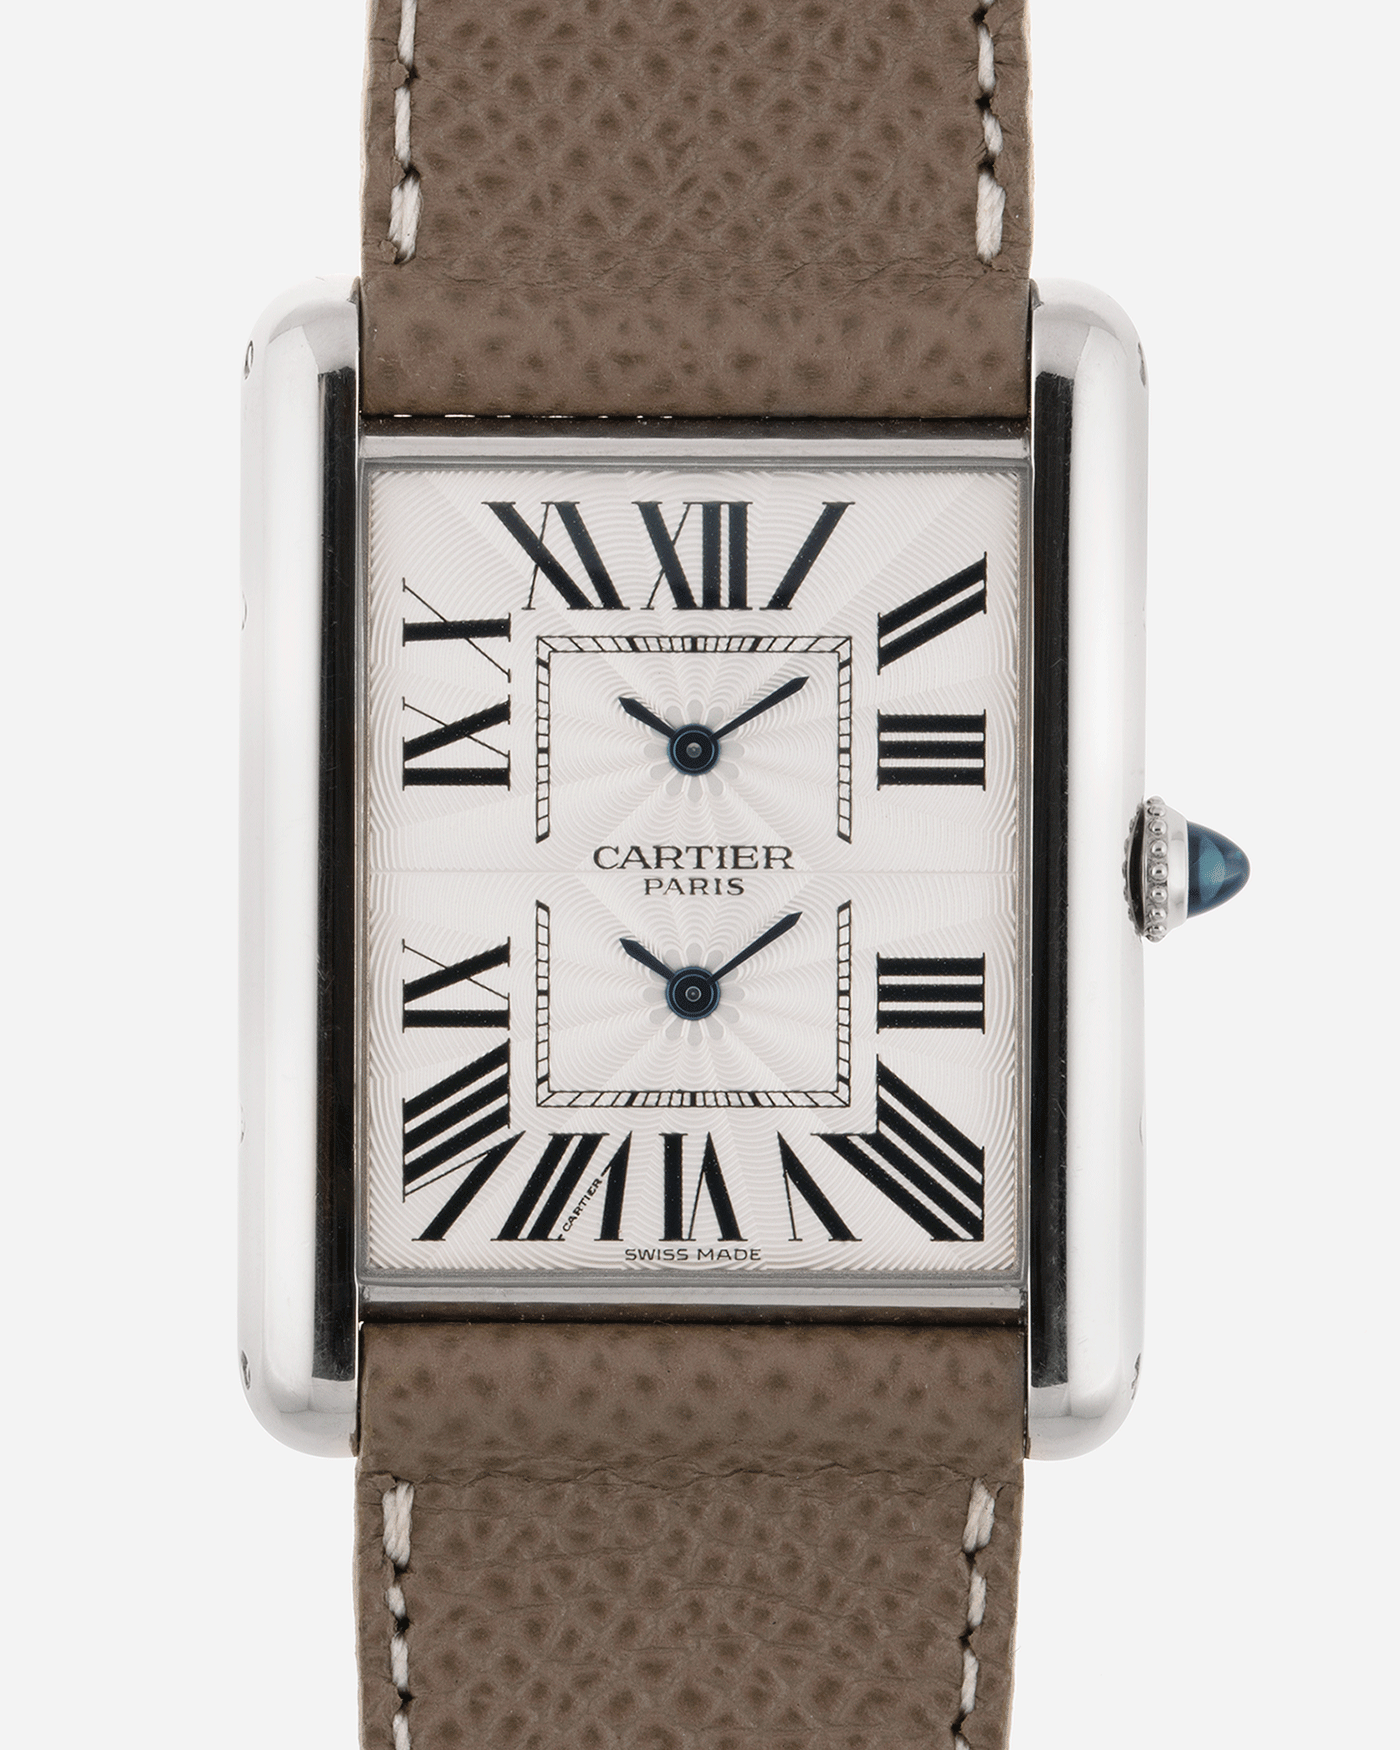 Cartier Tank CPCP Dual Time 2917 Collection Prive Cartier Paris Watch | S.Song Vintage Timepieces